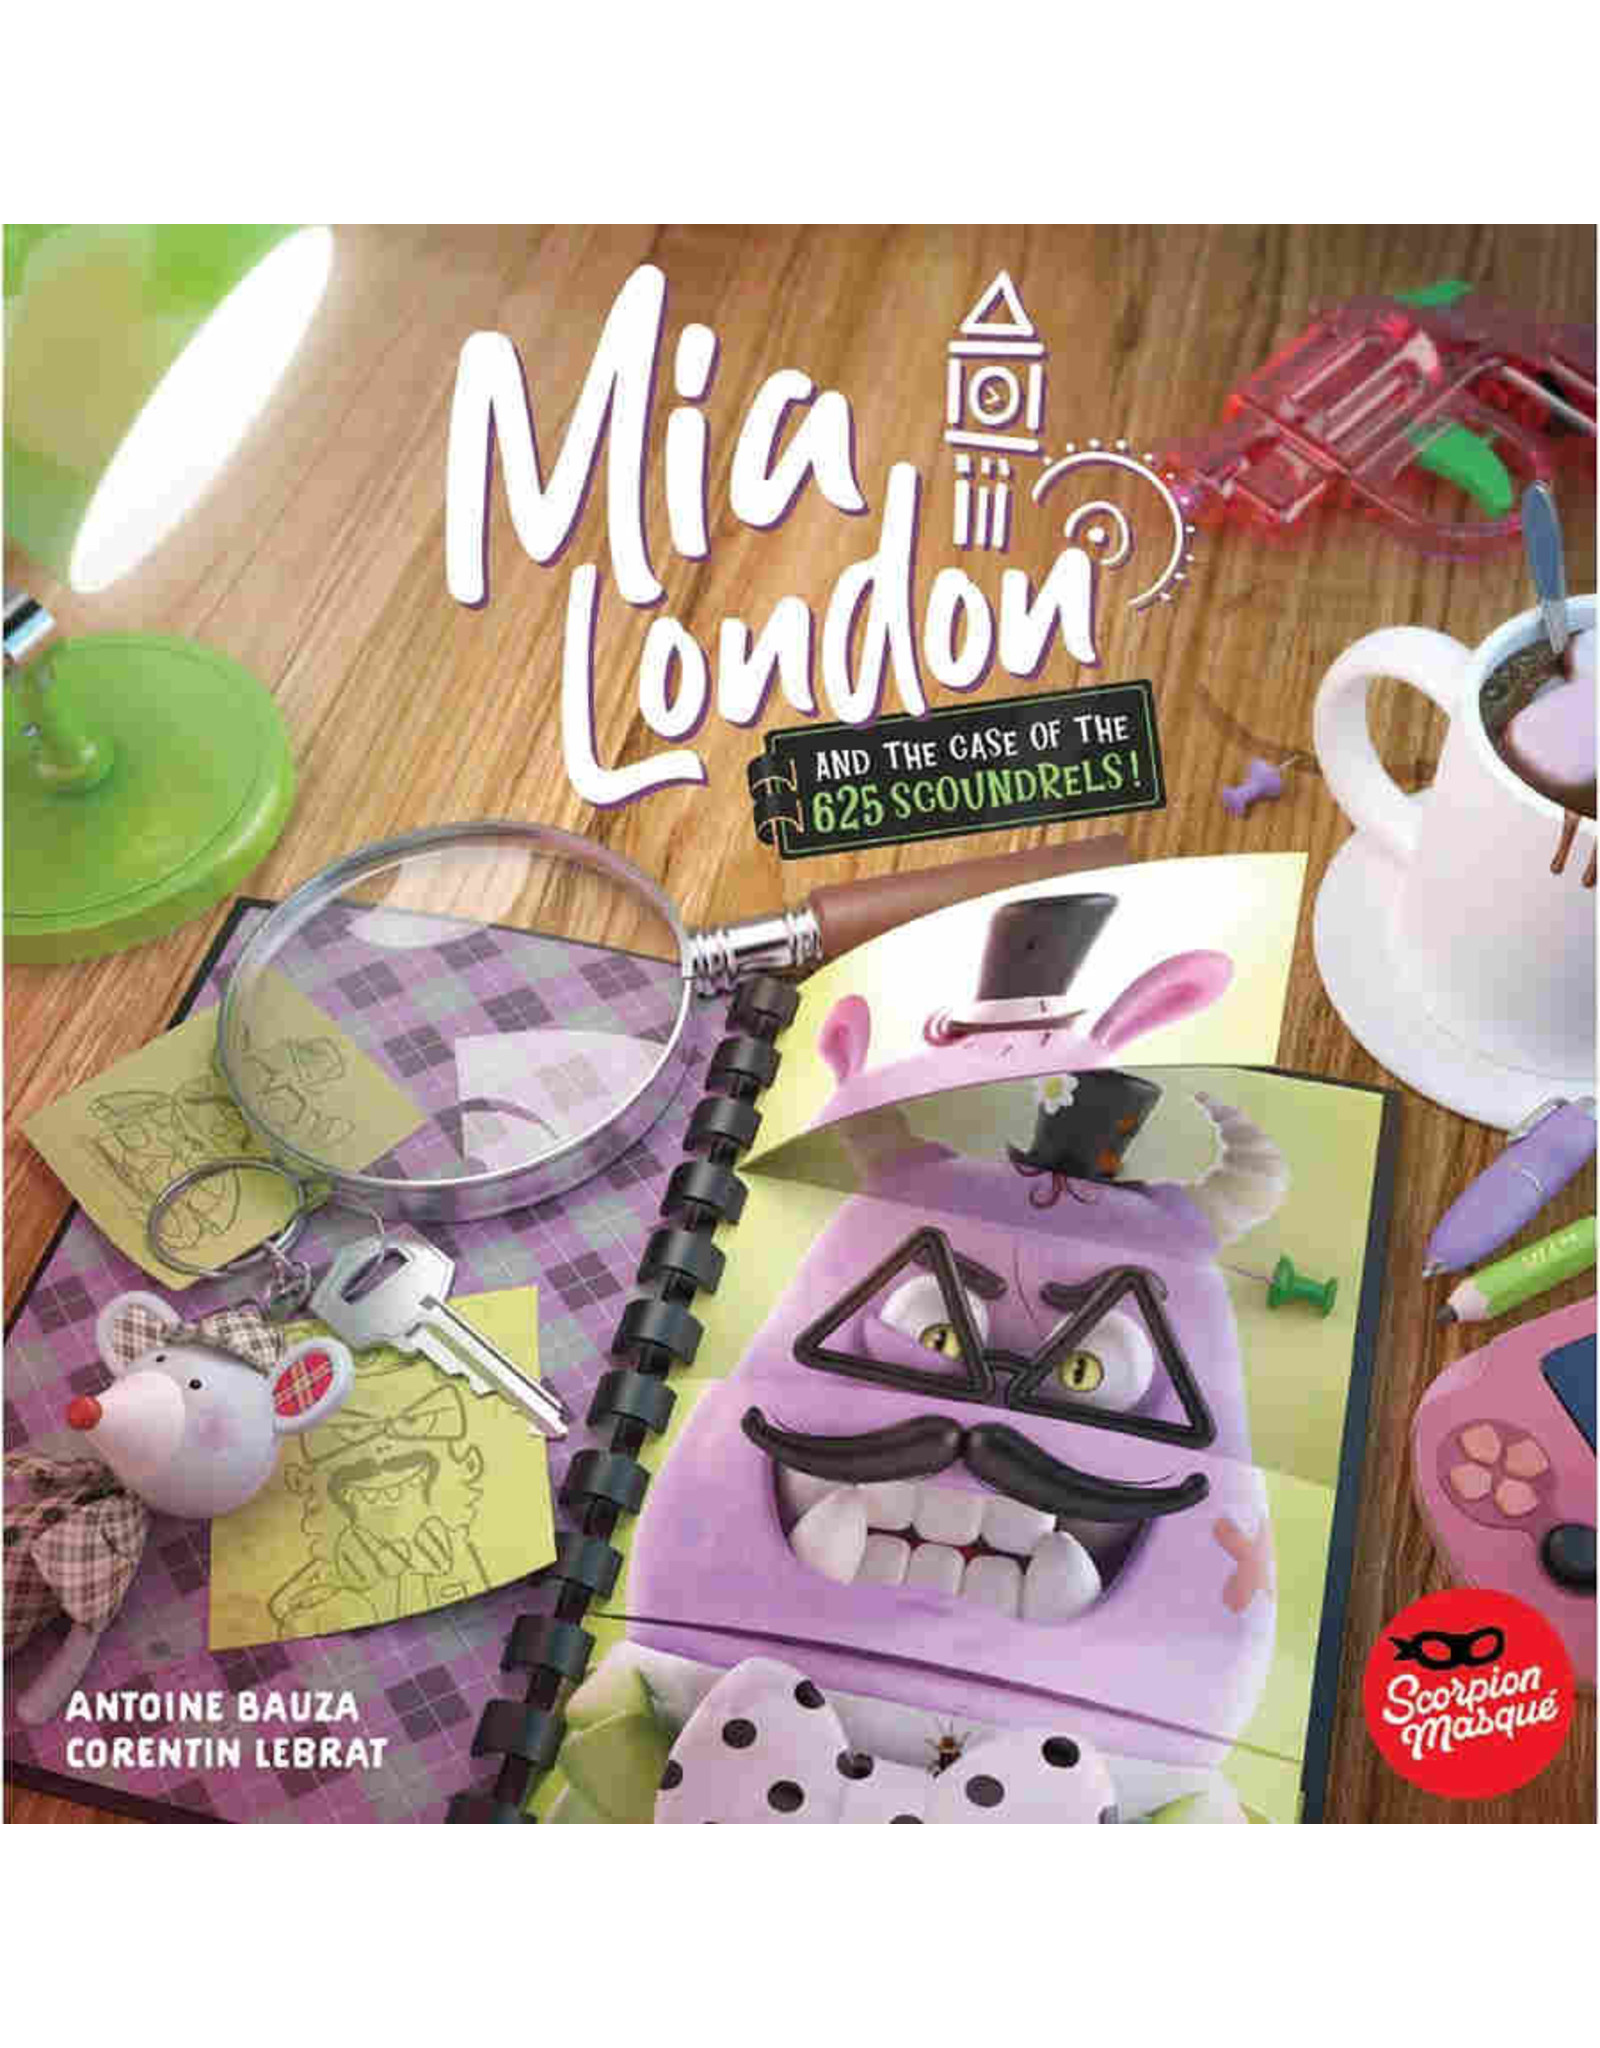 Scorpion Masque Mia London and the Case of the 625 Scoundrels